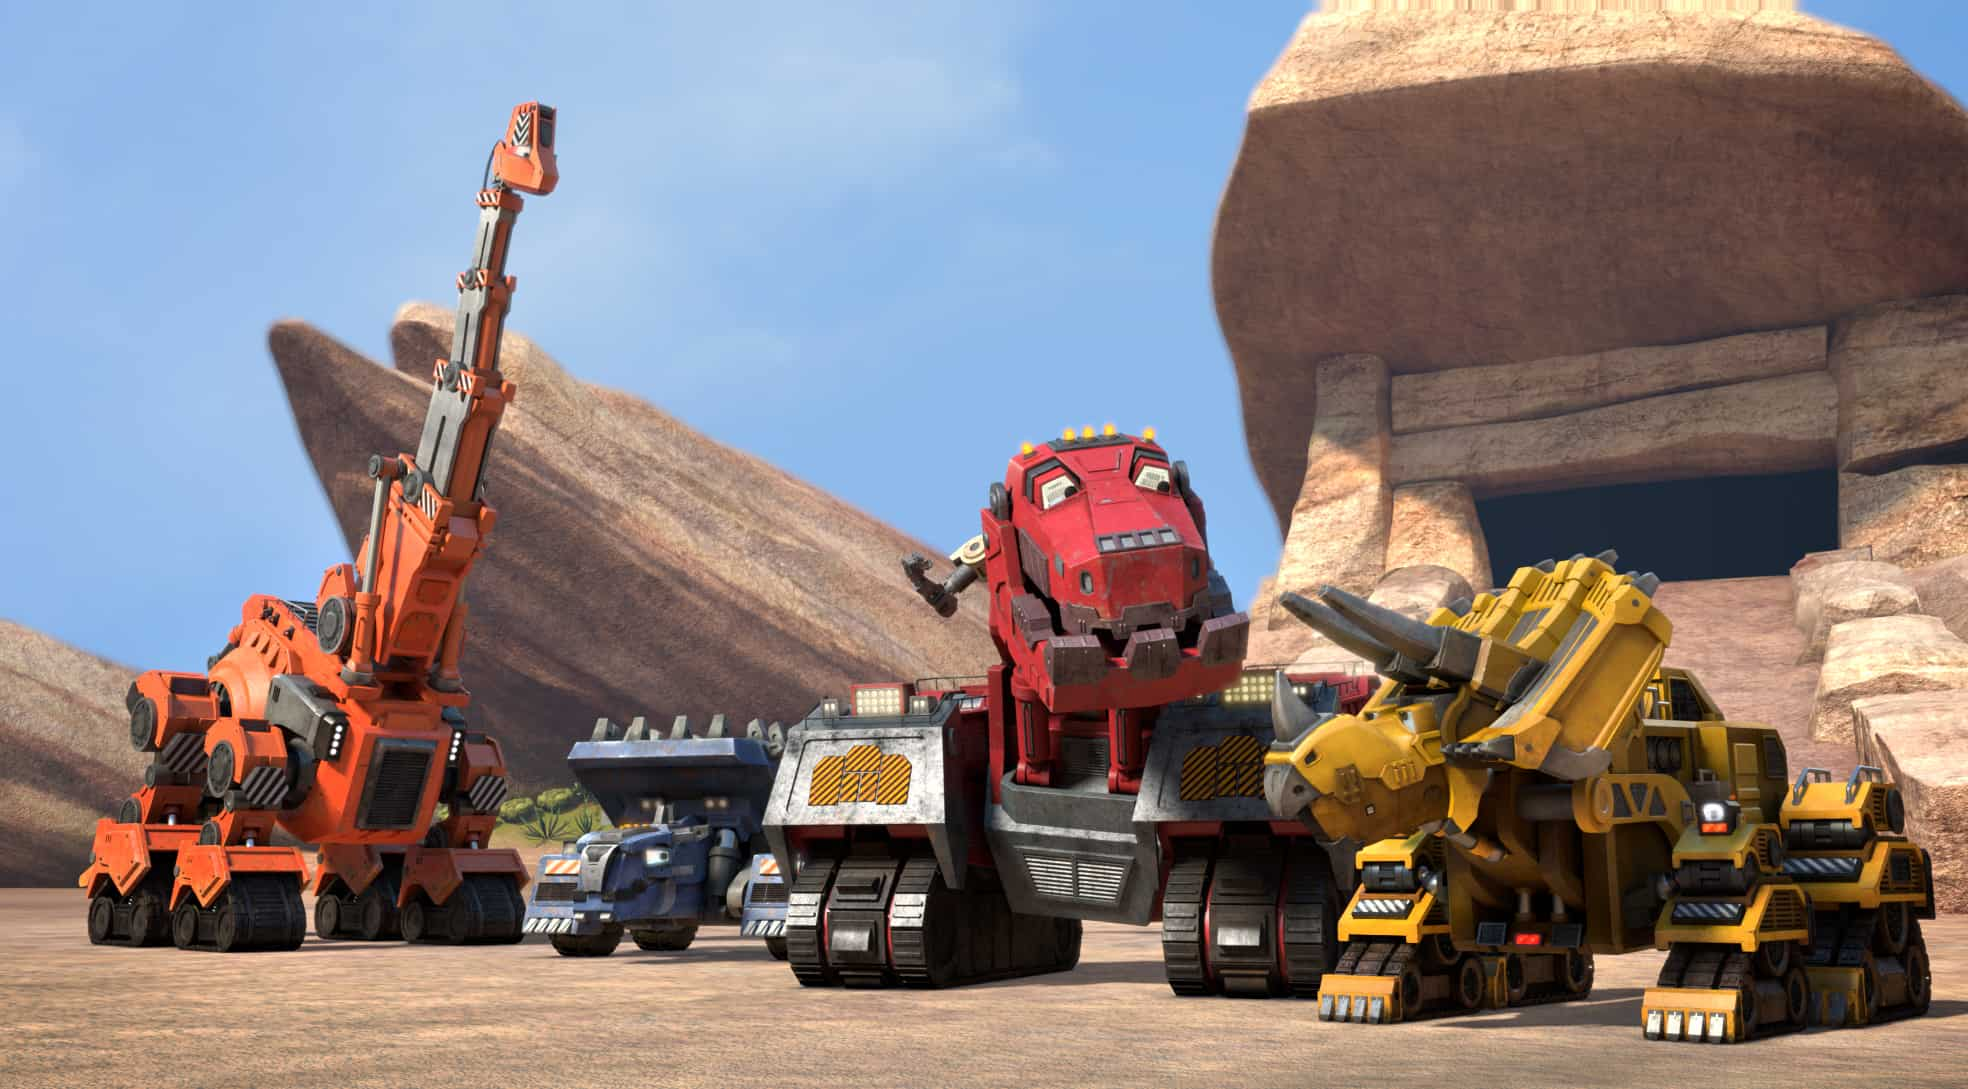 DinoTrux comes to life August 14th on Netflix